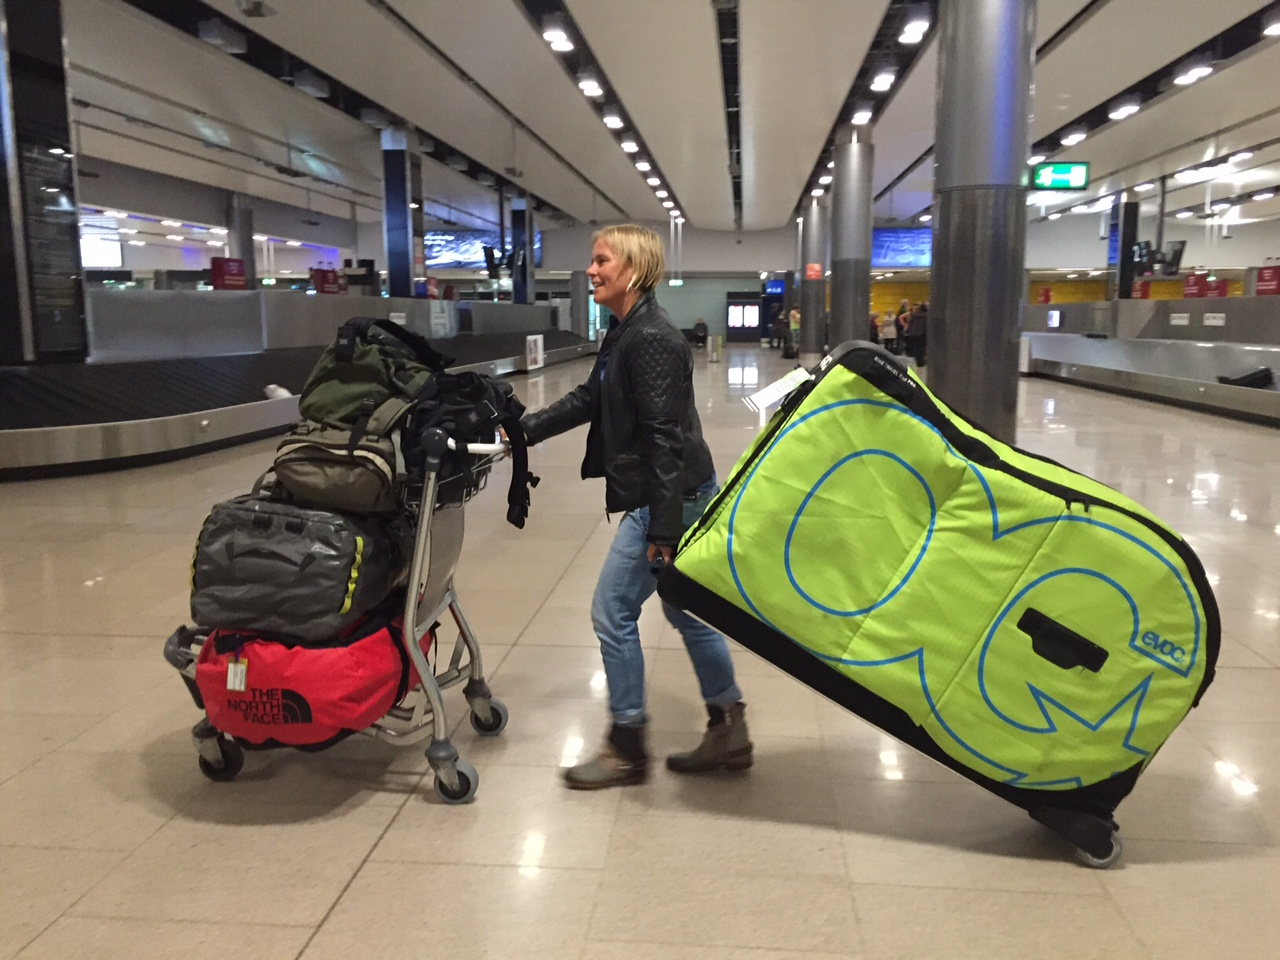 The joys of traveling with bicycles and lots of luggage.